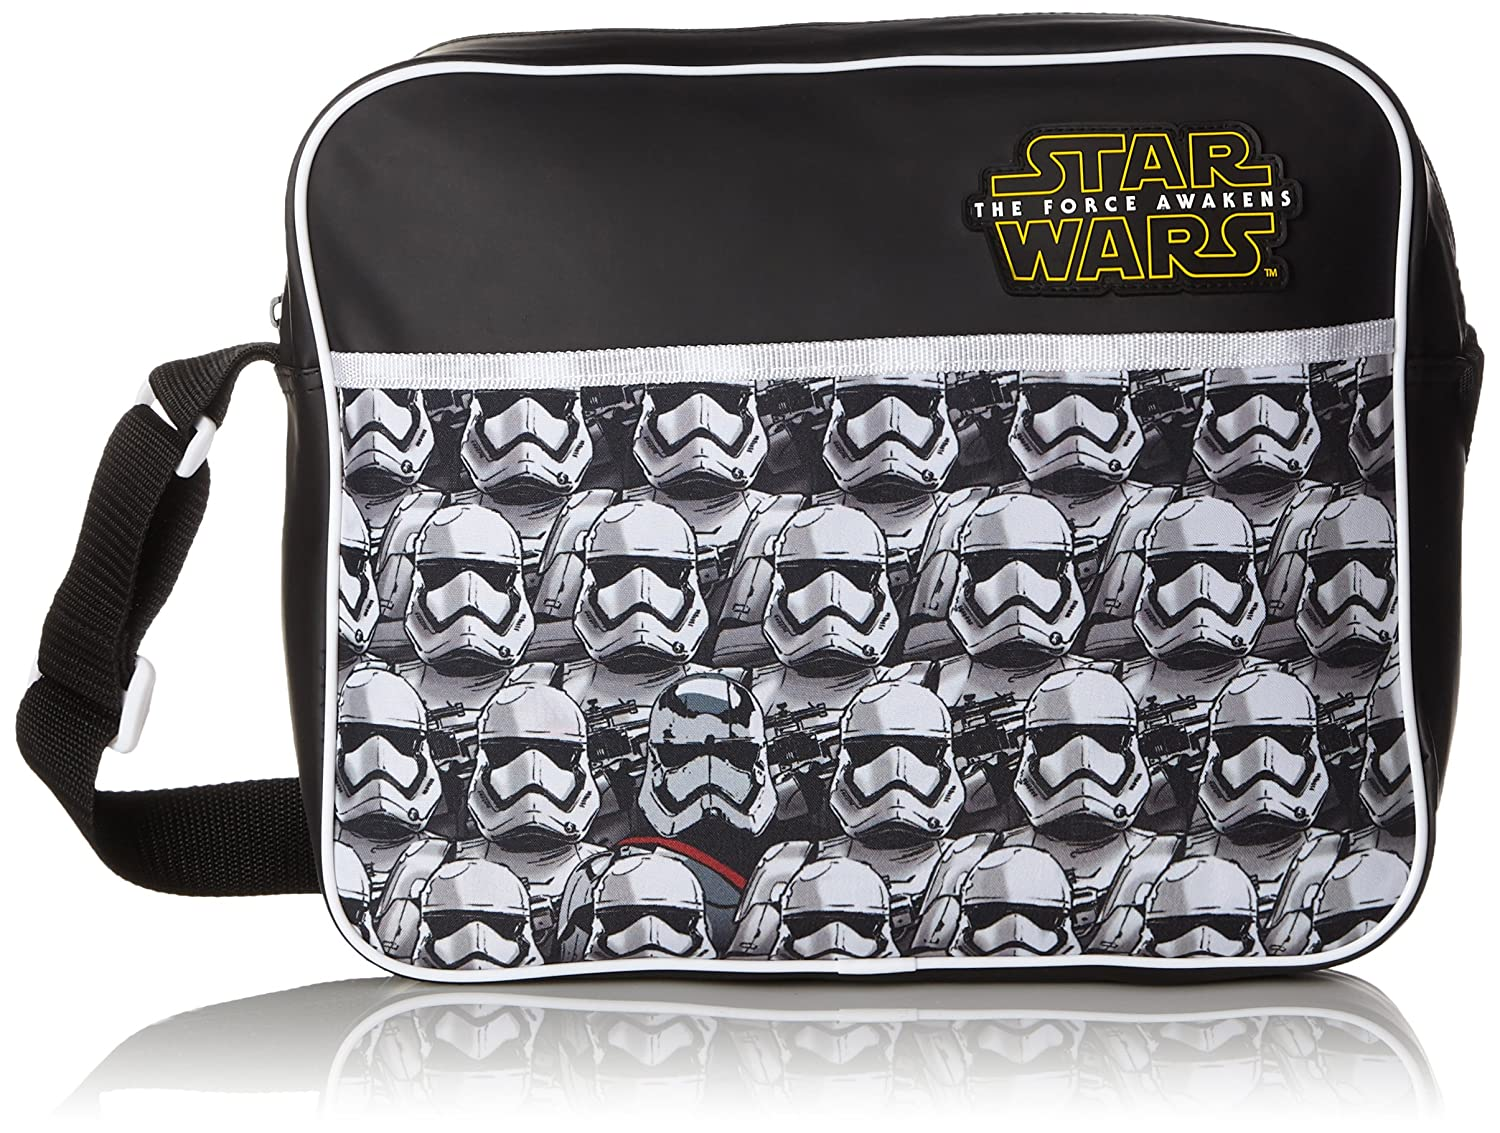 Star Wars Record Bags & Accessories Synthetic Material School Bags Black/White